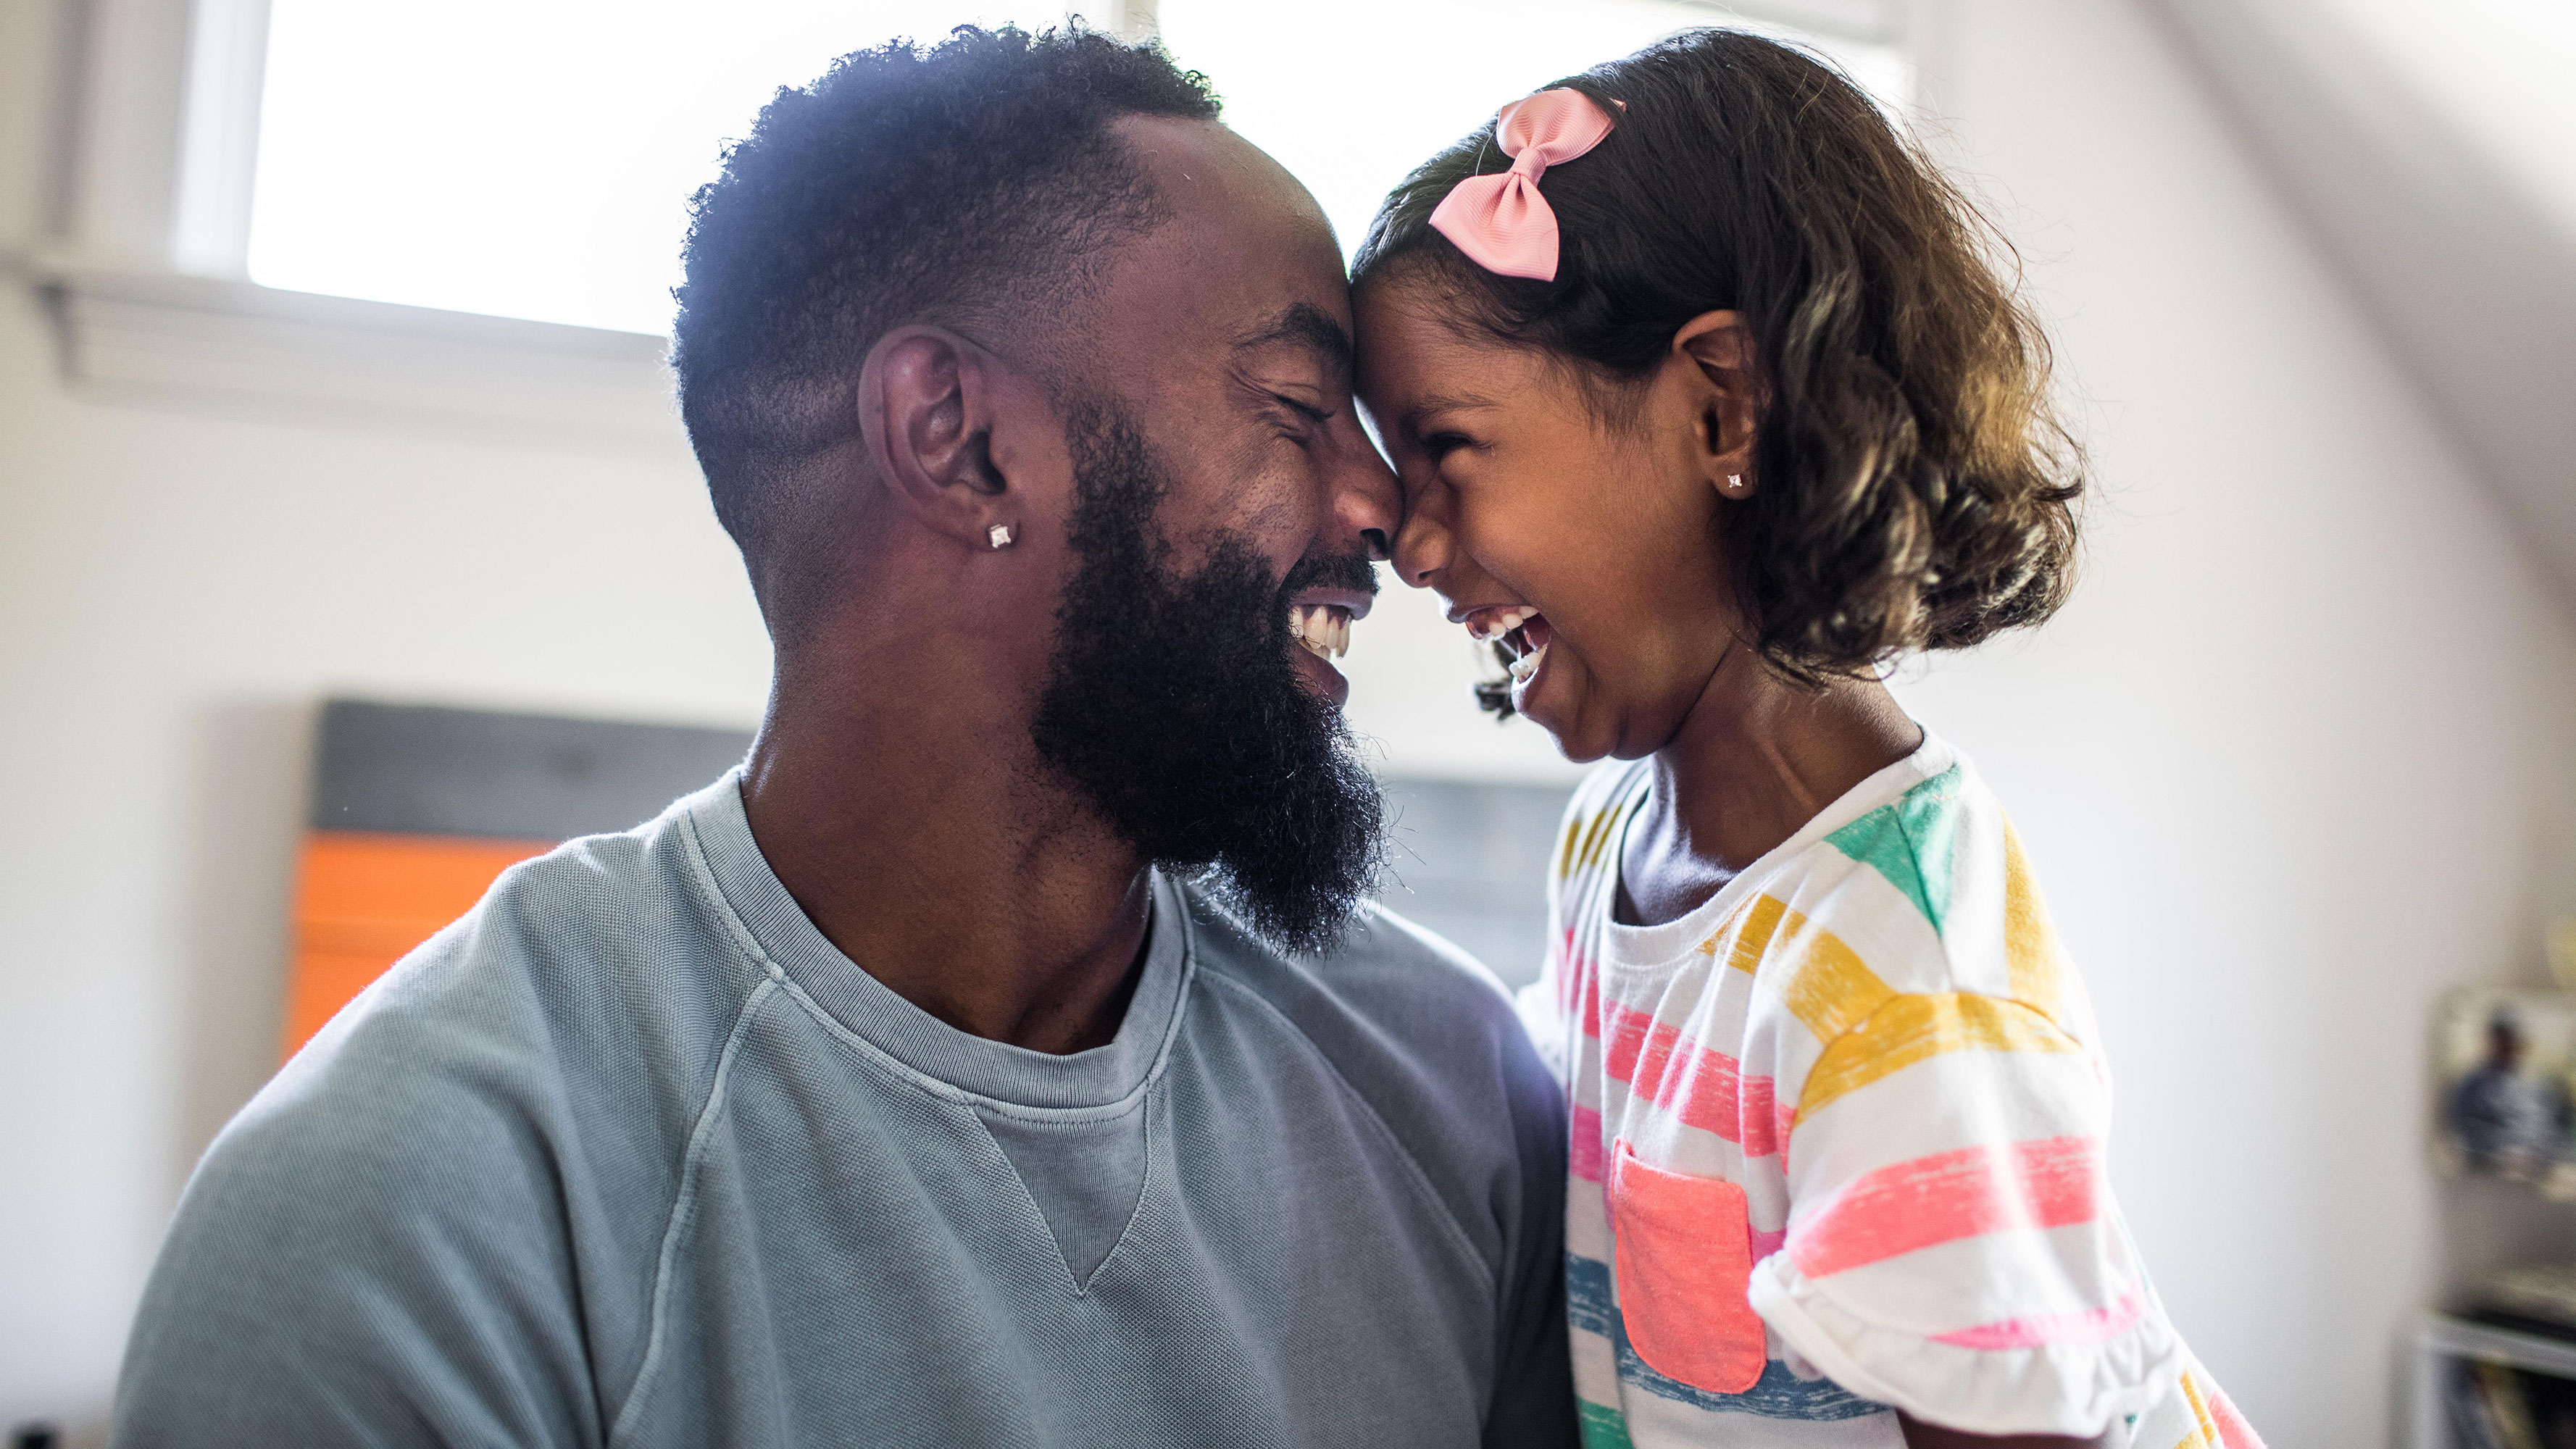 A father and daughter share in a smiling moment in a modern-looking living room.